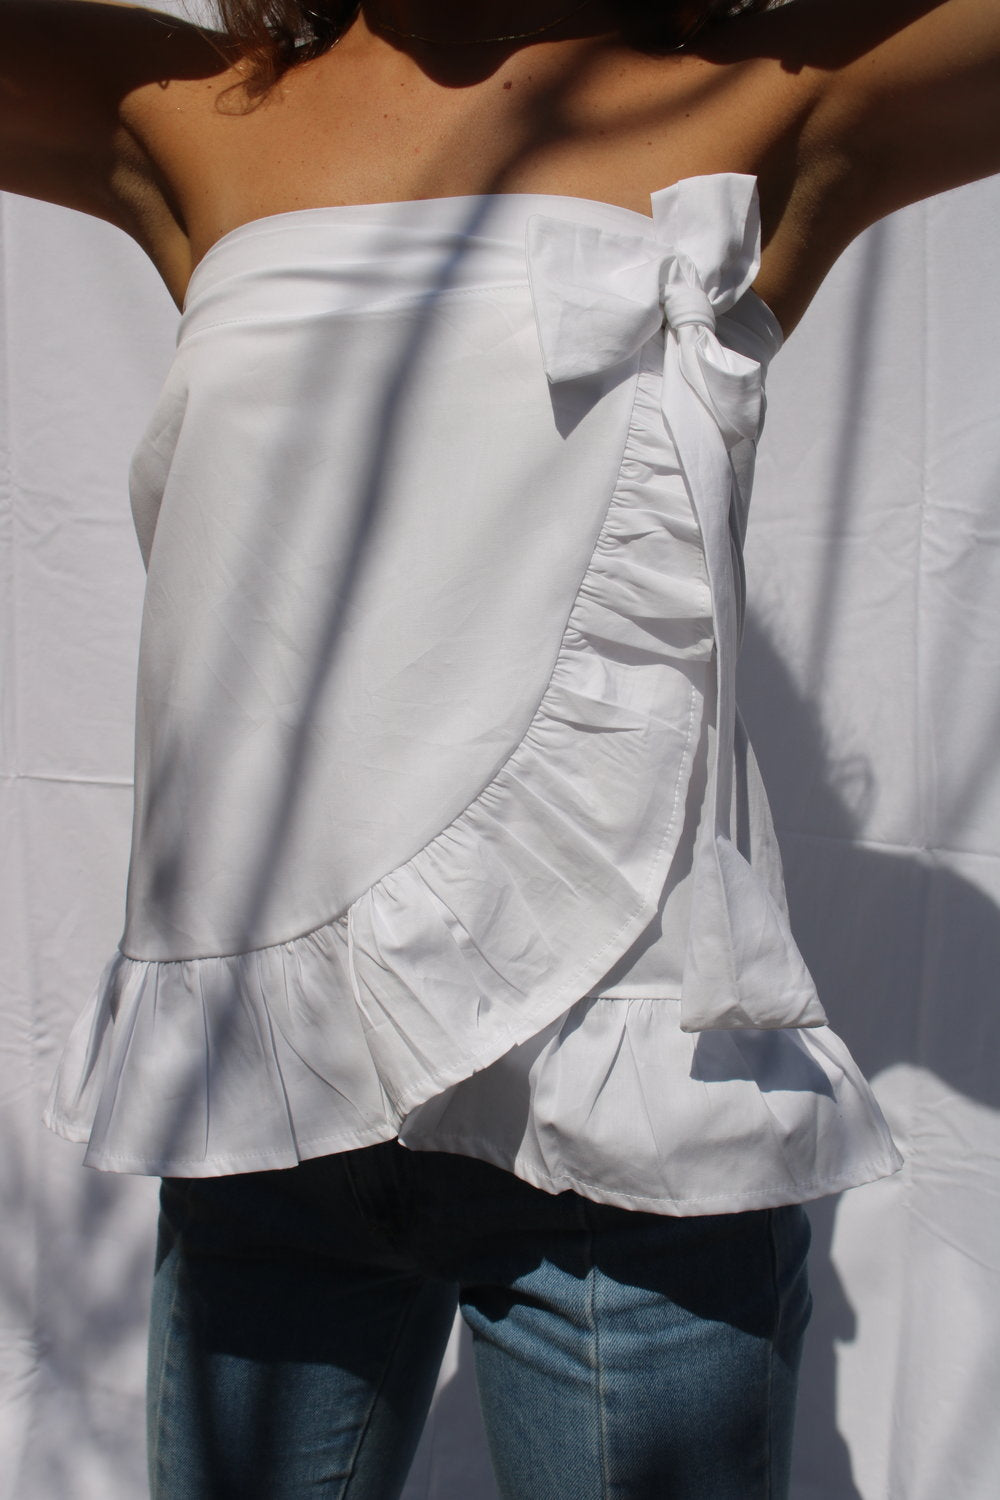 A woman wearing a white skirt.